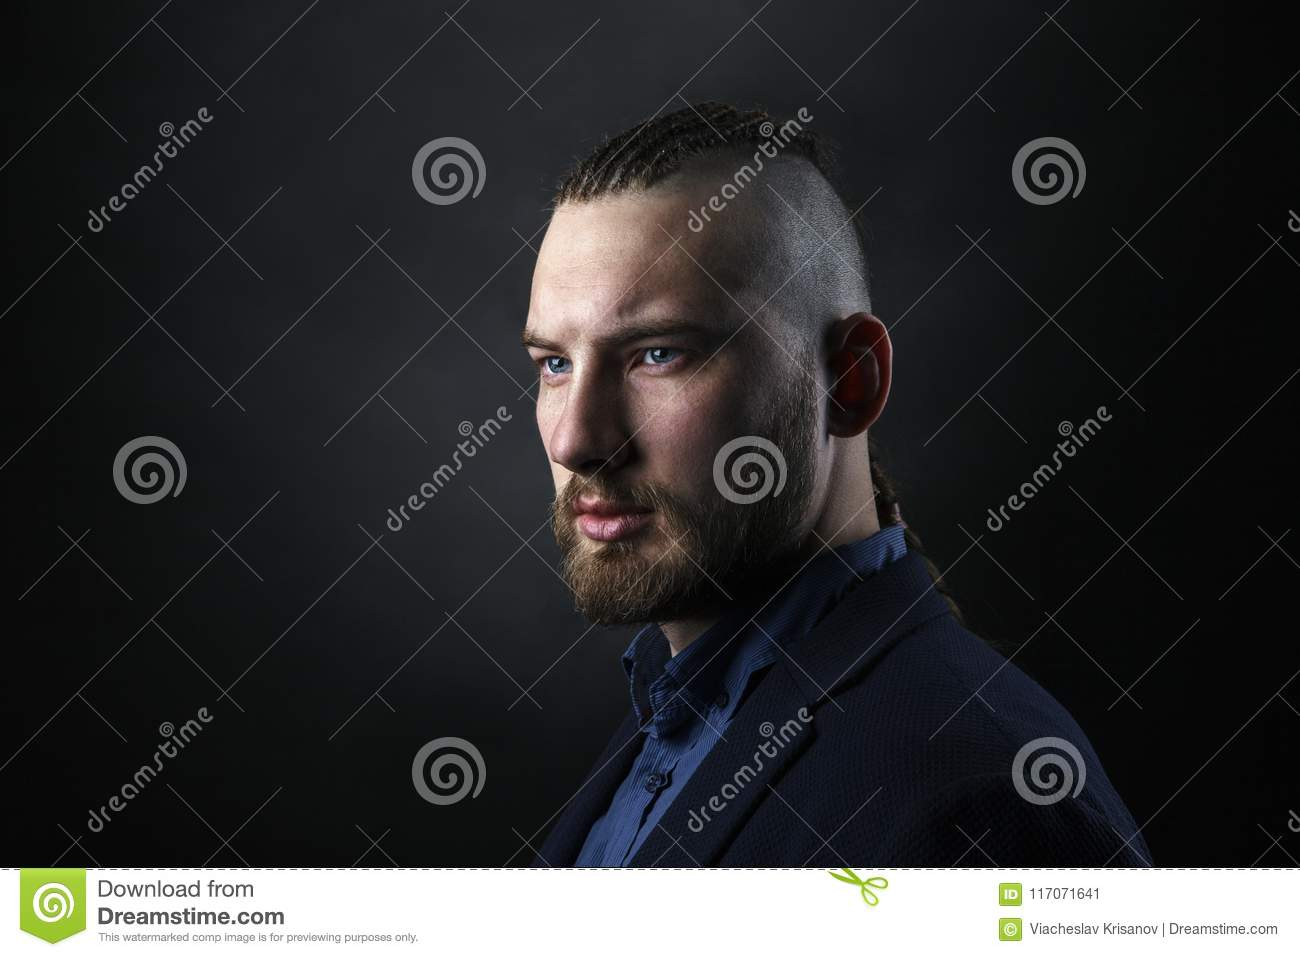 homme avec les dreadlocks ressembler un viking coupe de cheveux iroquois image stock image. Black Bedroom Furniture Sets. Home Design Ideas